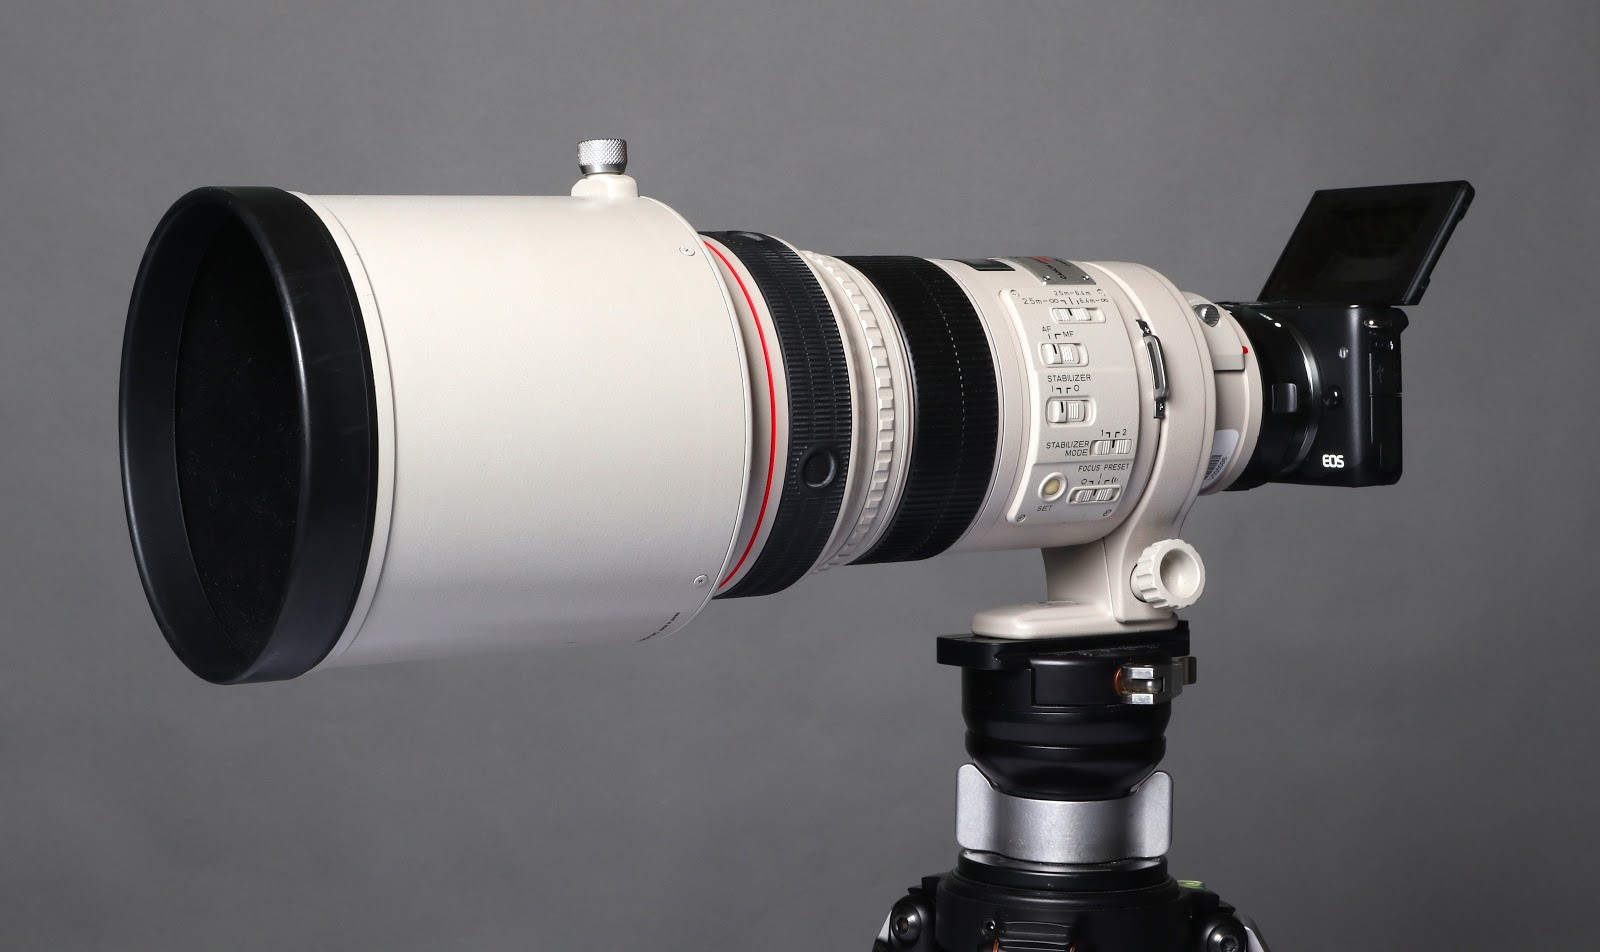 Using the Canon EOS M10 with a 300mm L Lens